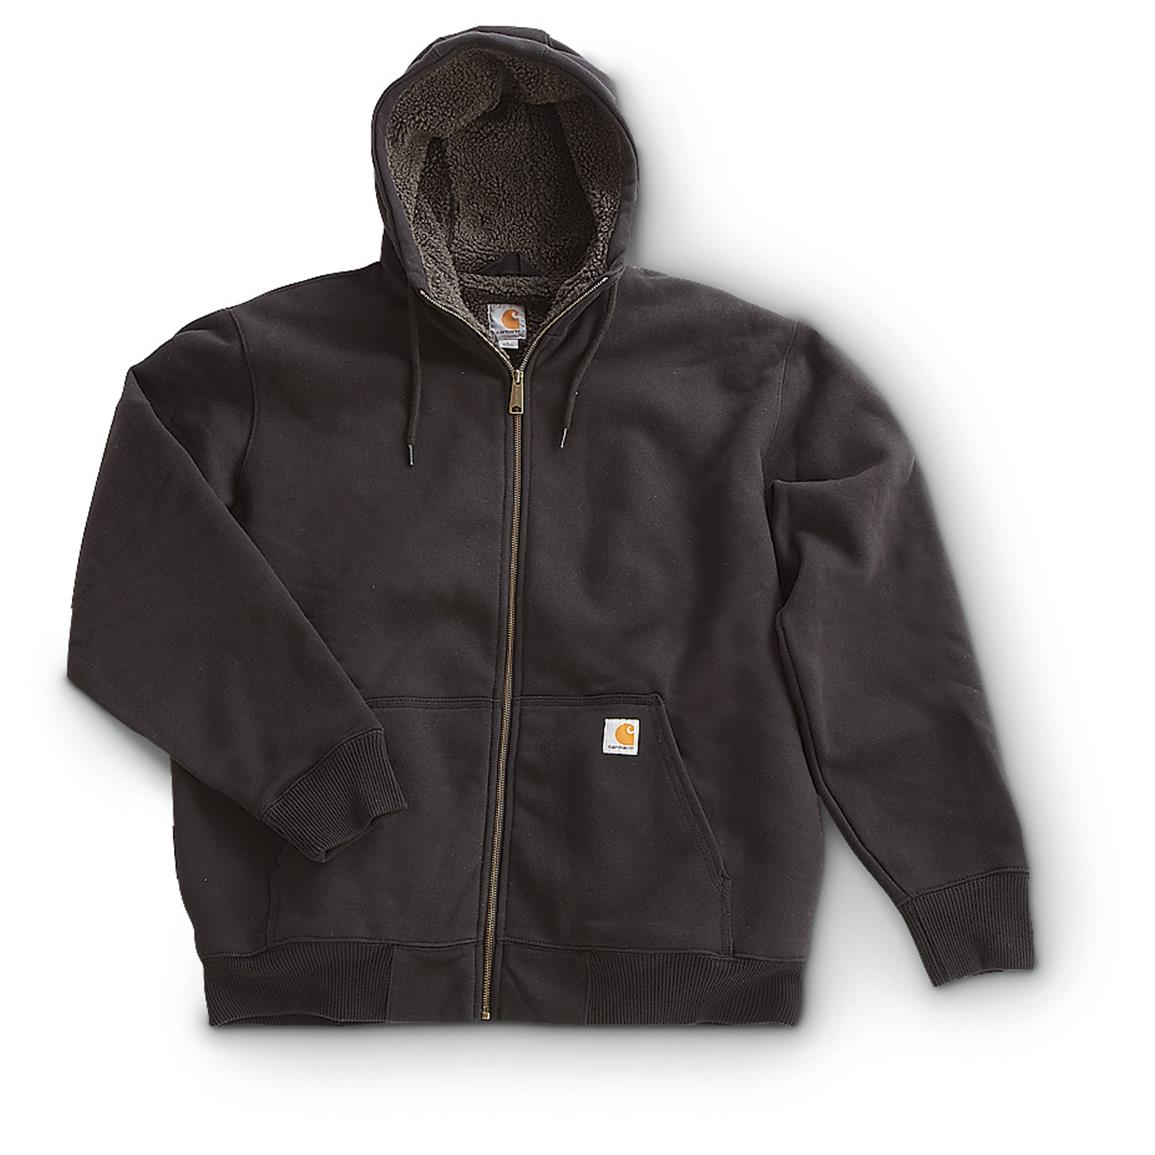 Carhartt® Paxton Zip-front Hooded Sweatshirt, Black